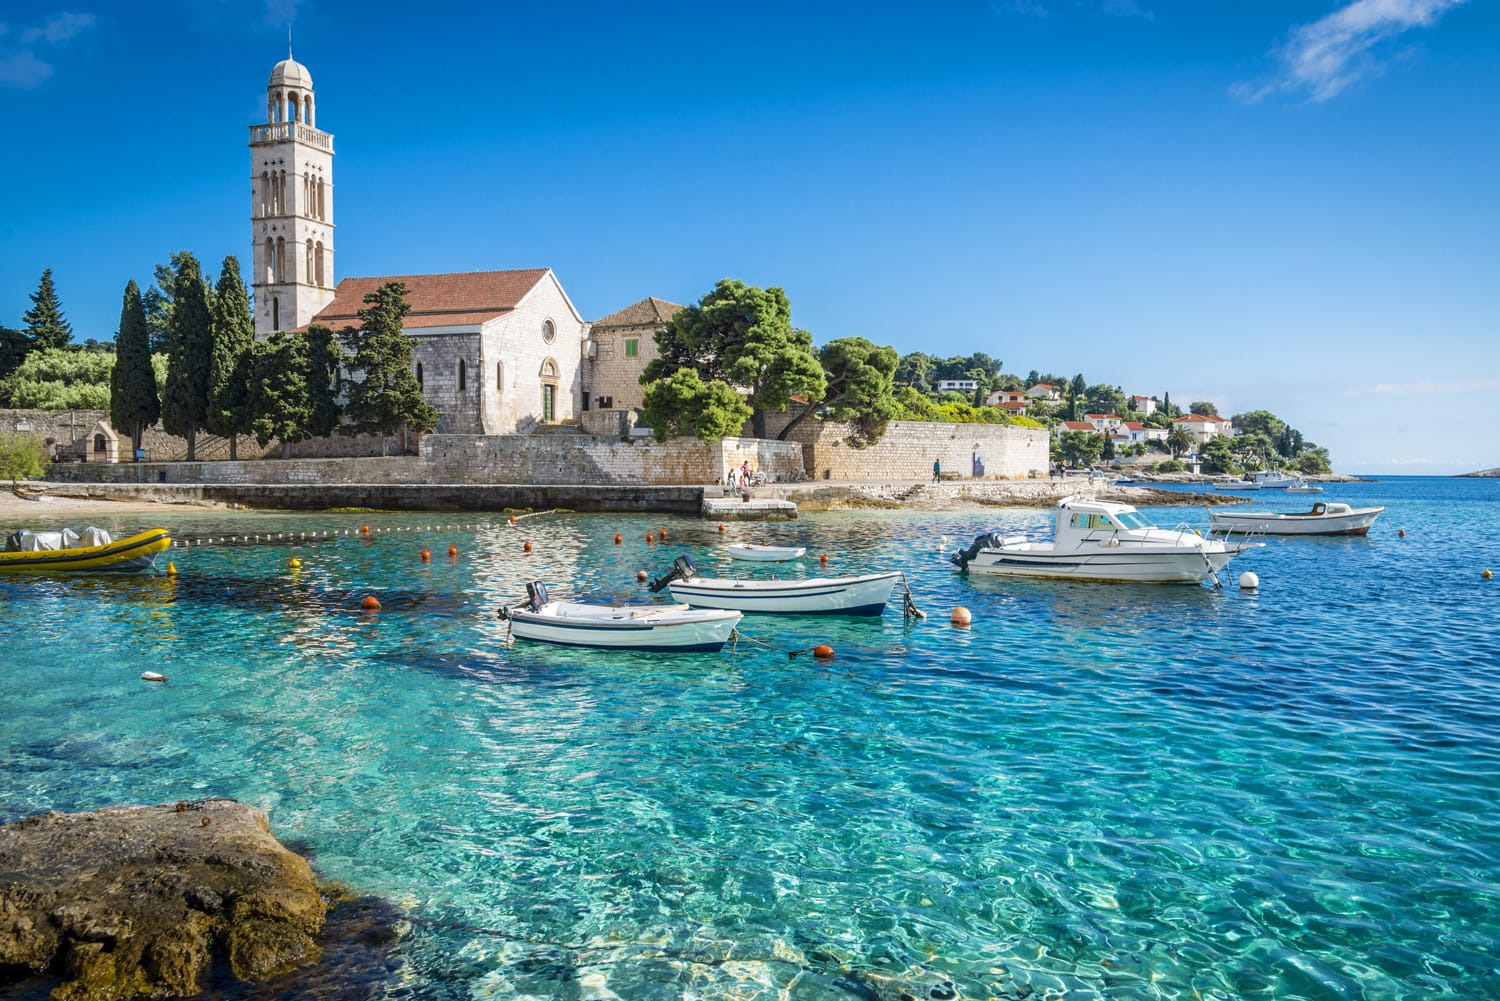 Amazing Hvar city on Hvar island, Croatia